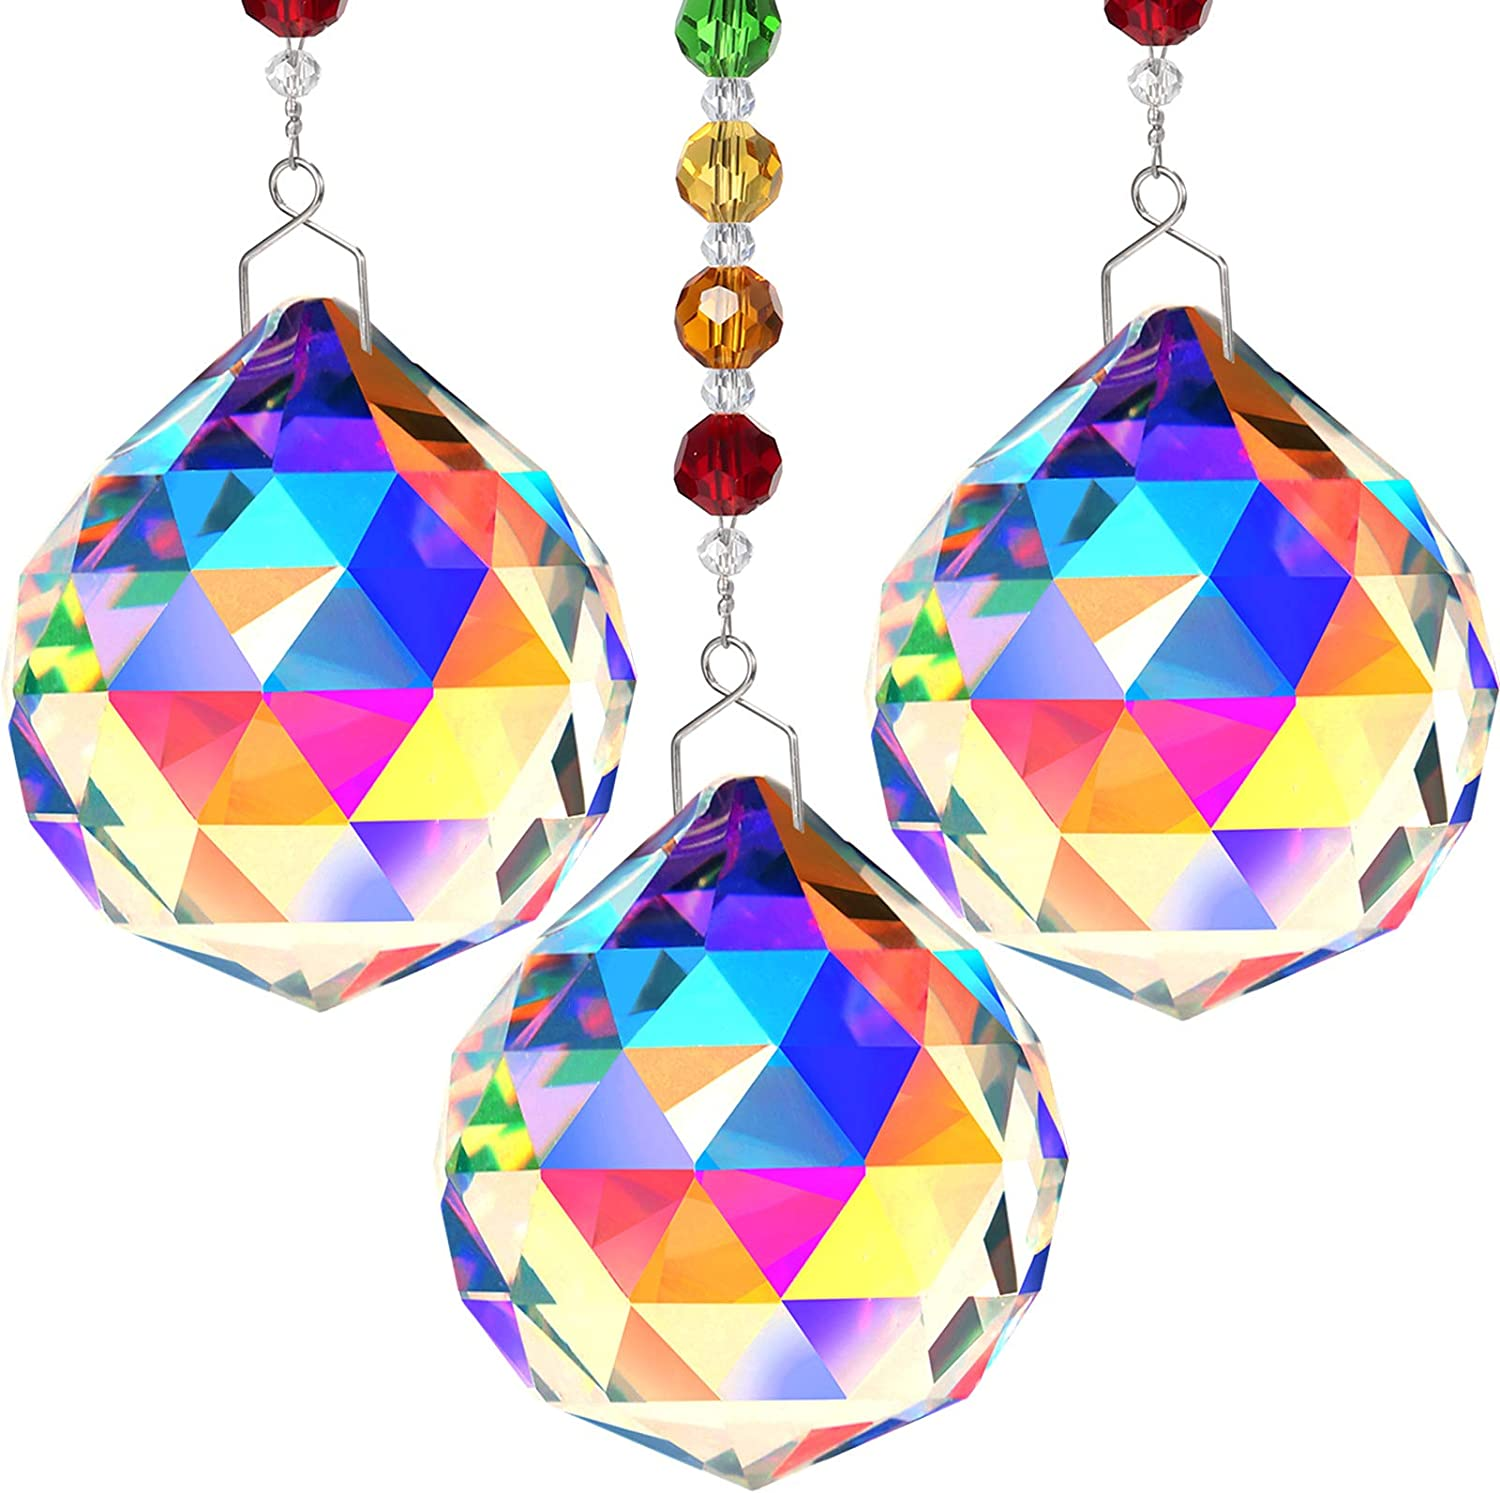 3 Pieces Crystal Suncatcher Colorful 40mm Crystal Ball Chandelier Pendant Rainbow Create Hanging Ornament Wall Hanging Tree Window Prism Ornament for Christmas Wedding Plants Cars Decor